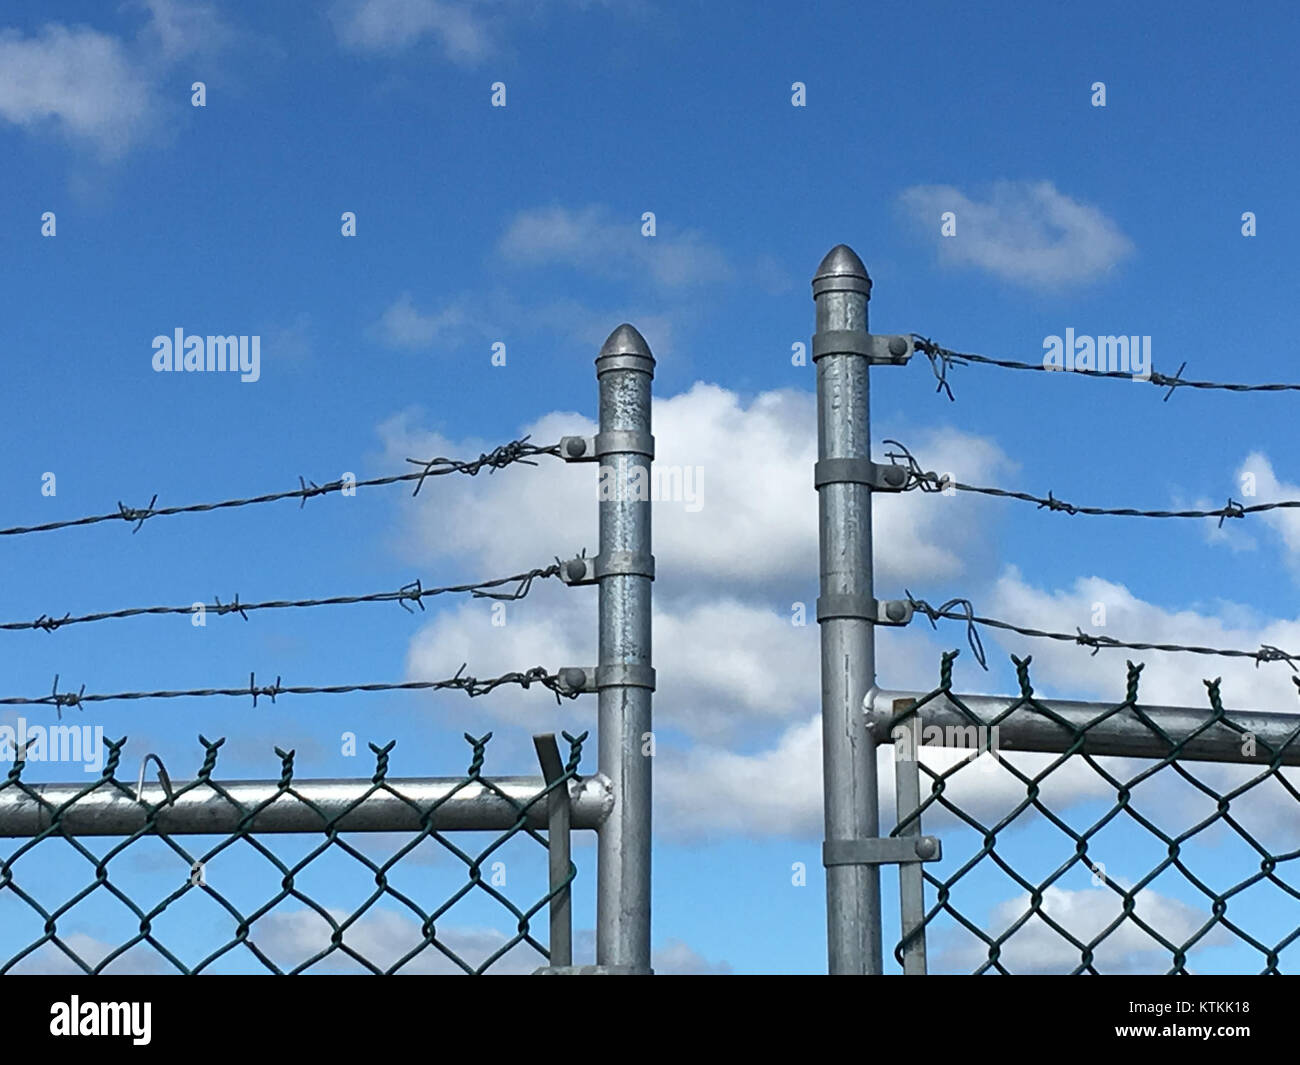 Barbed Wire Gate Stock Photos & Barbed Wire Gate Stock Images - Alamy